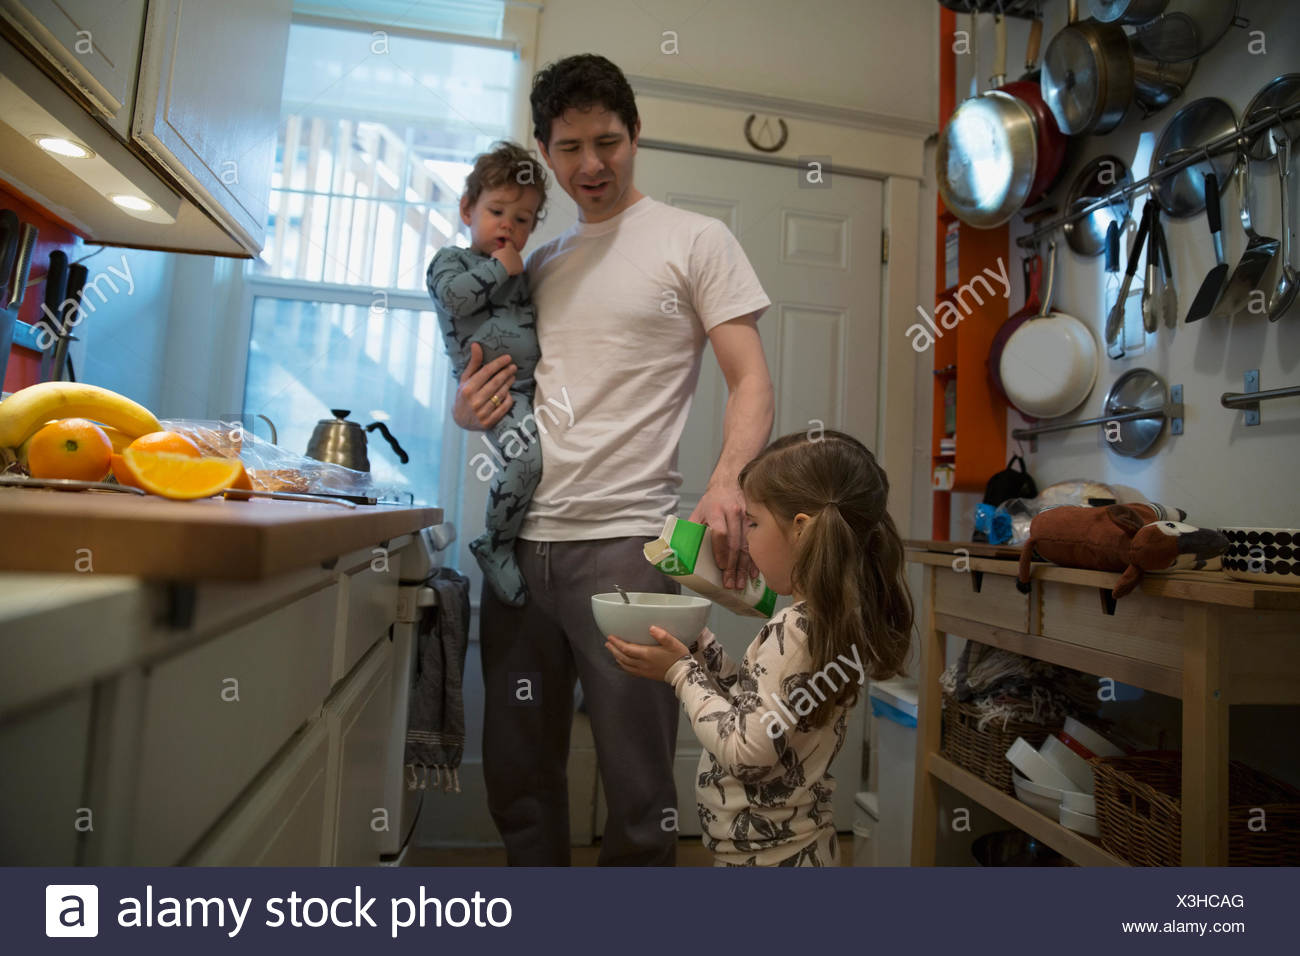 Girl holding bowl of cereal in kitchen - Stock Image